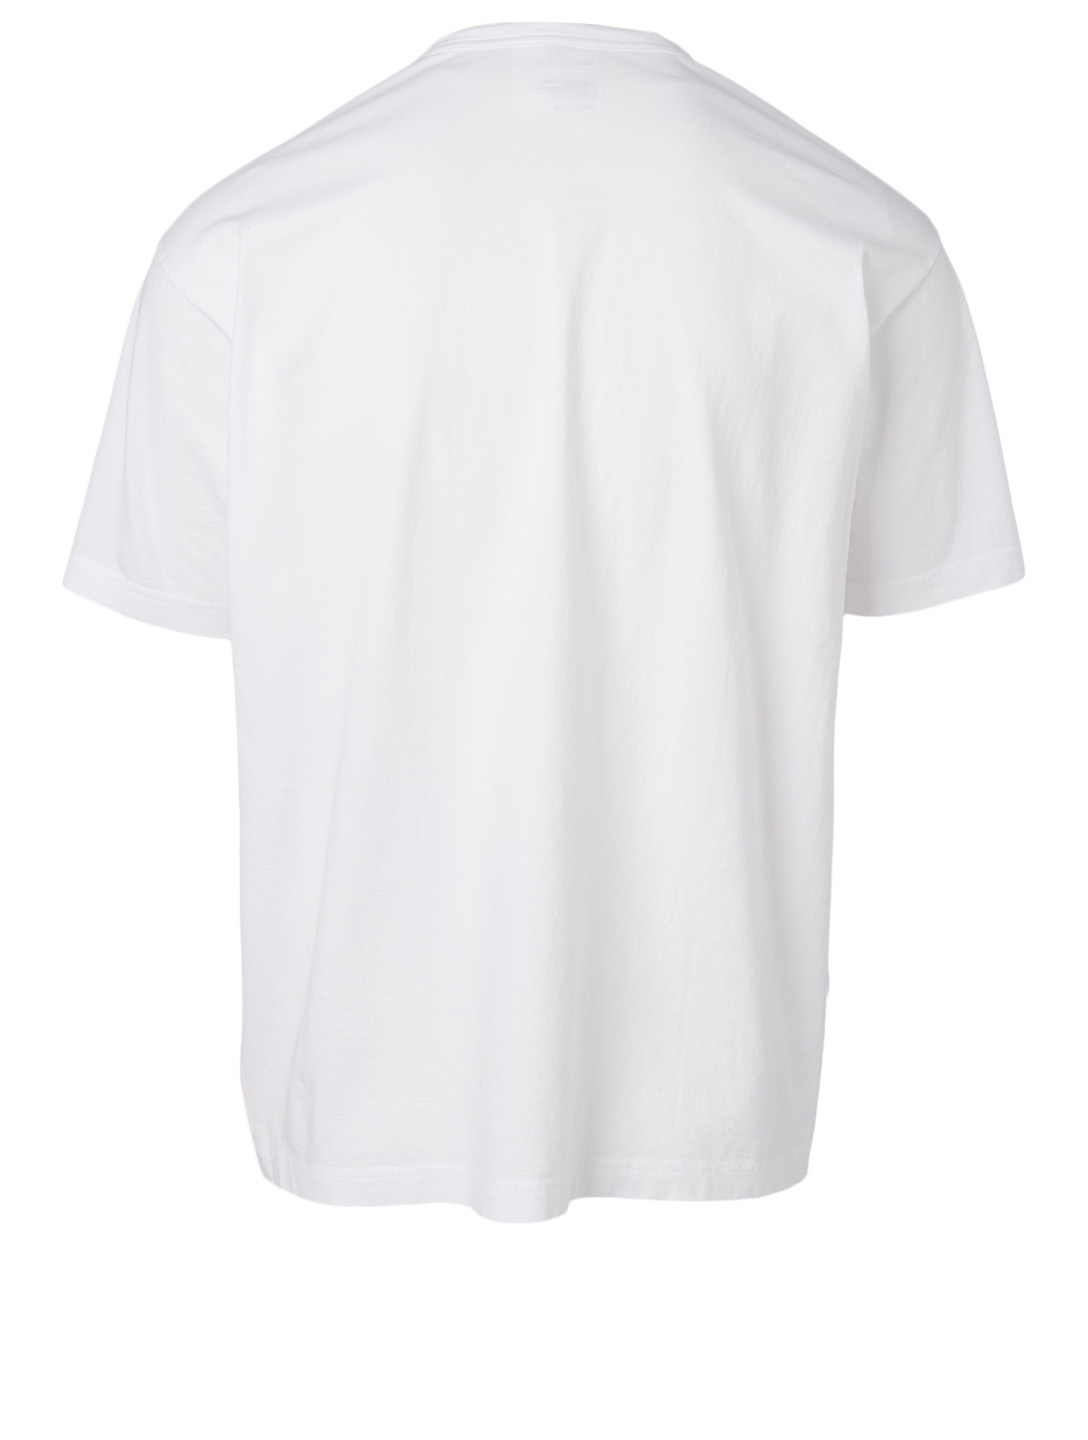 ACNE STUDIOS Cotton T-Shirt Men's White